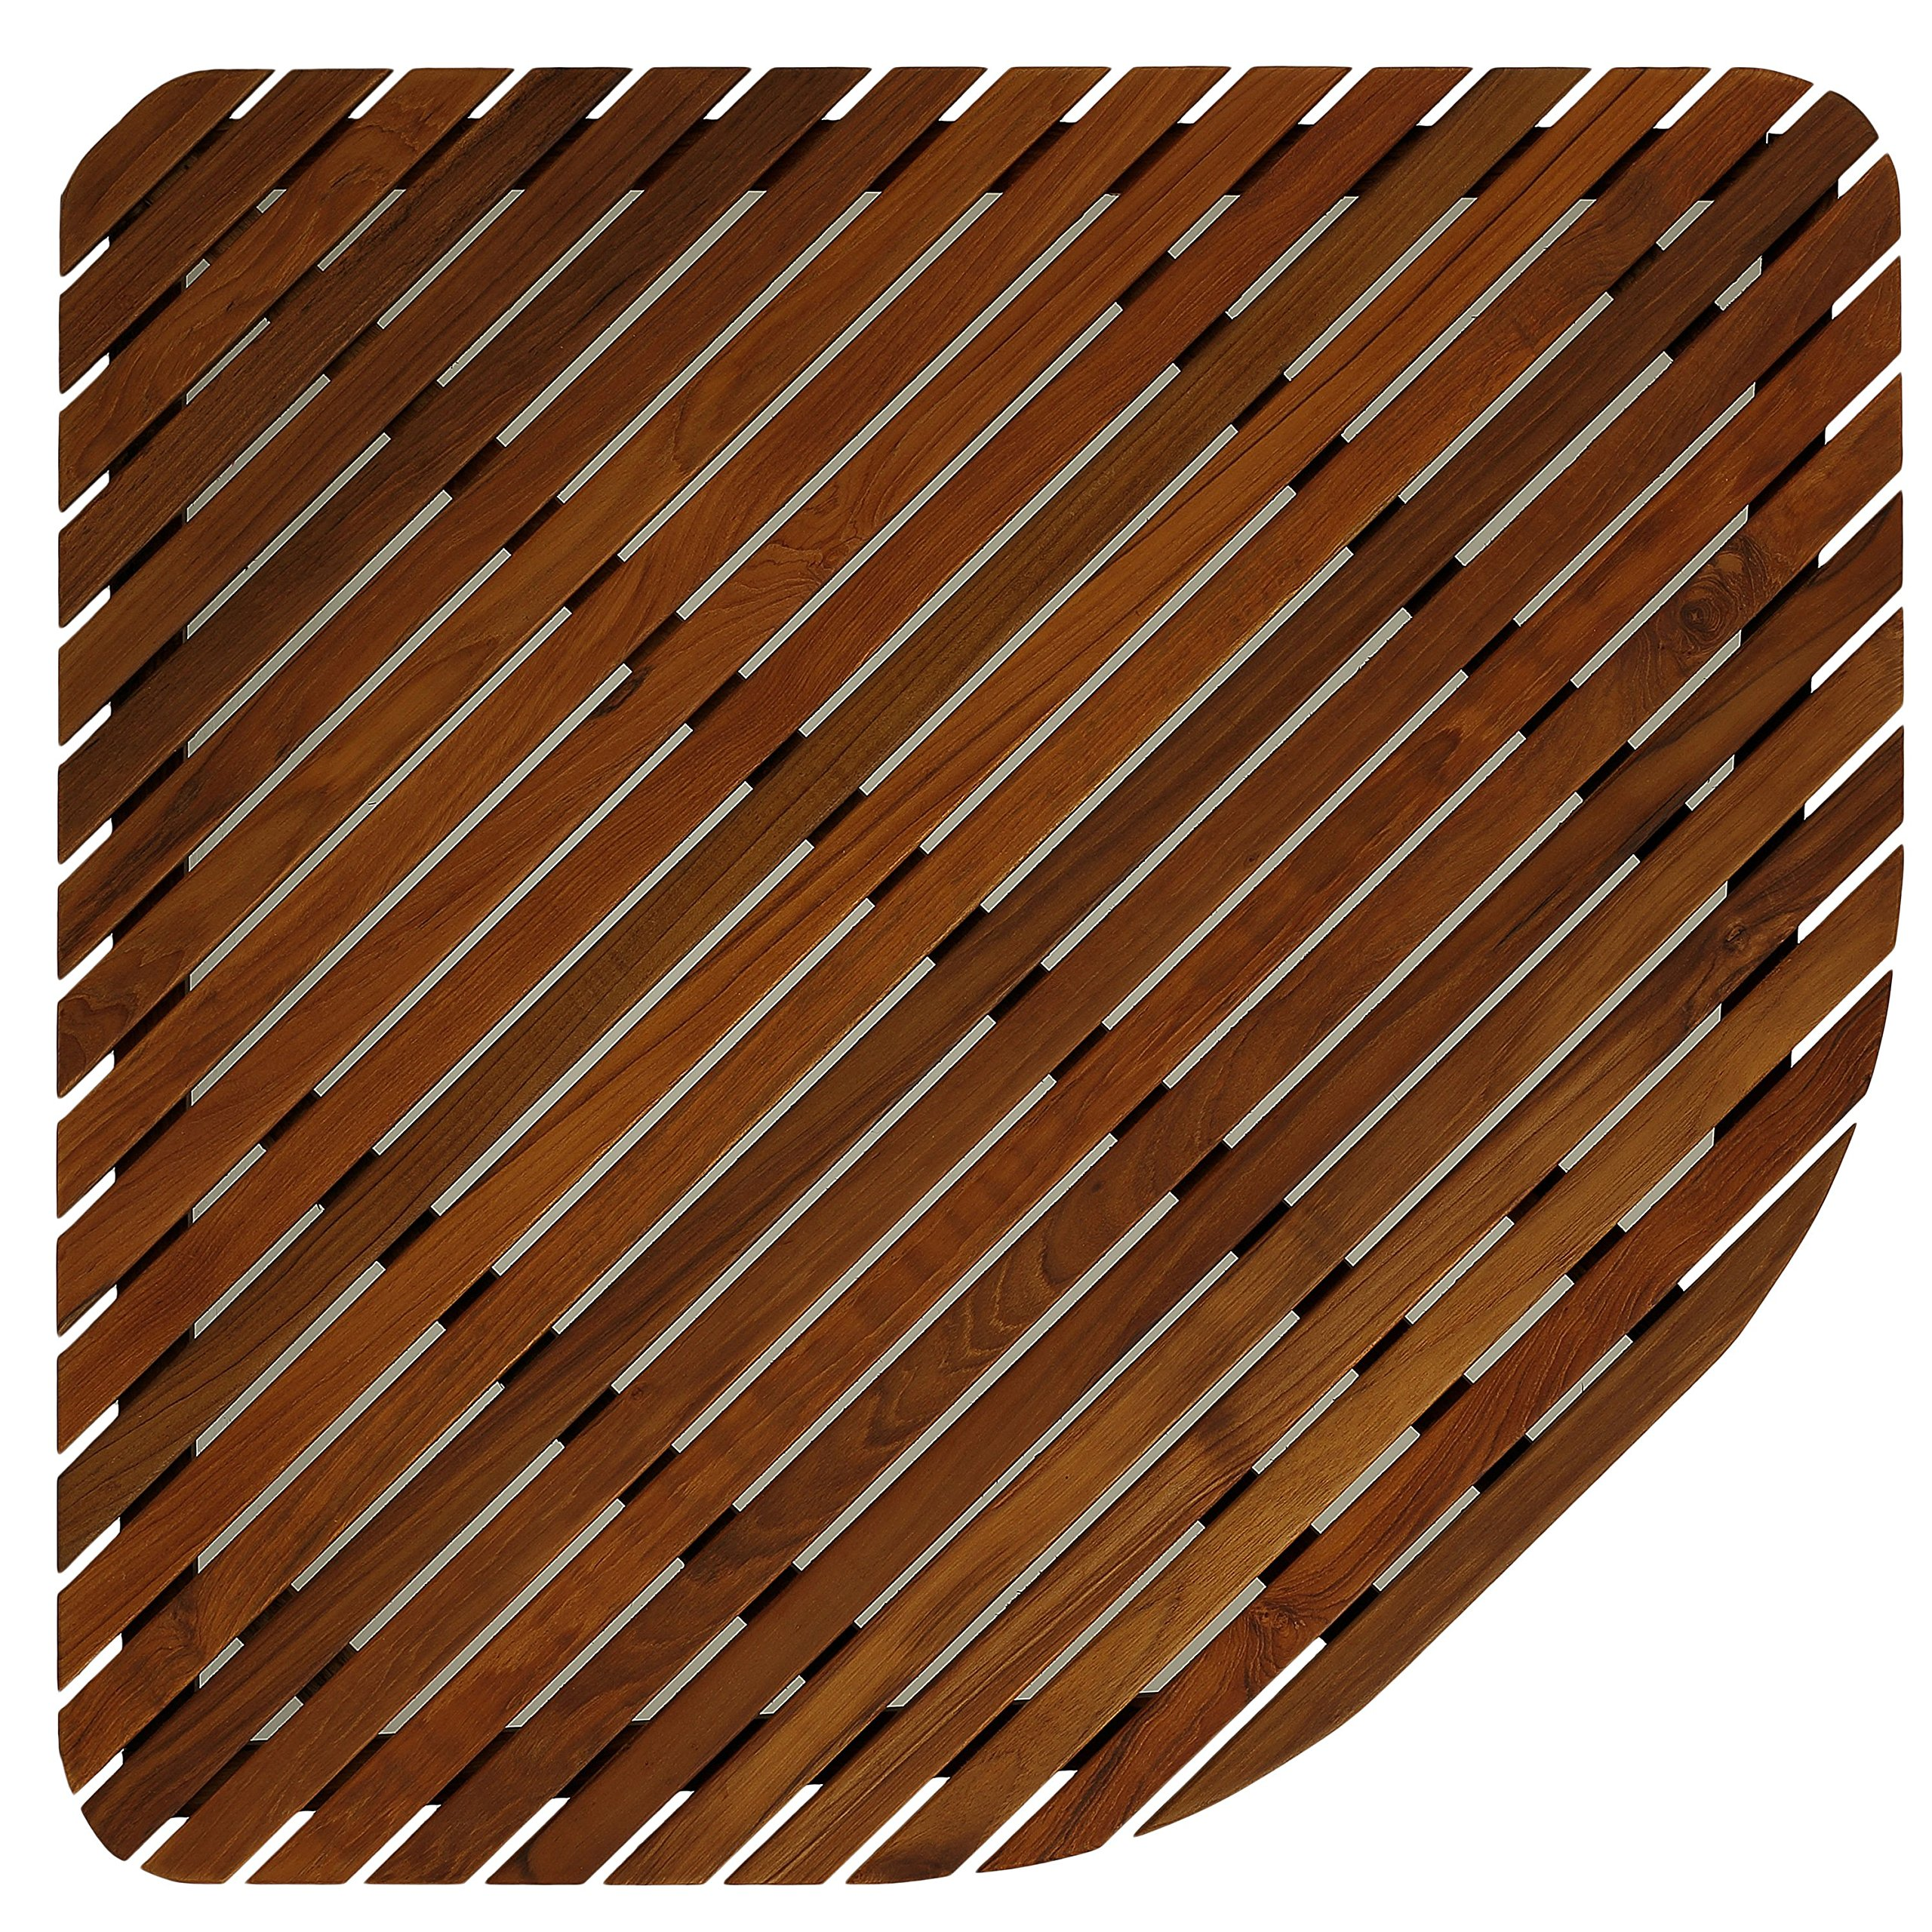 Bare Decor 30 by 30-Inch Erika Corner Shower Spa Mat in Solid Teak Wood and Oiled Finish, X-Large